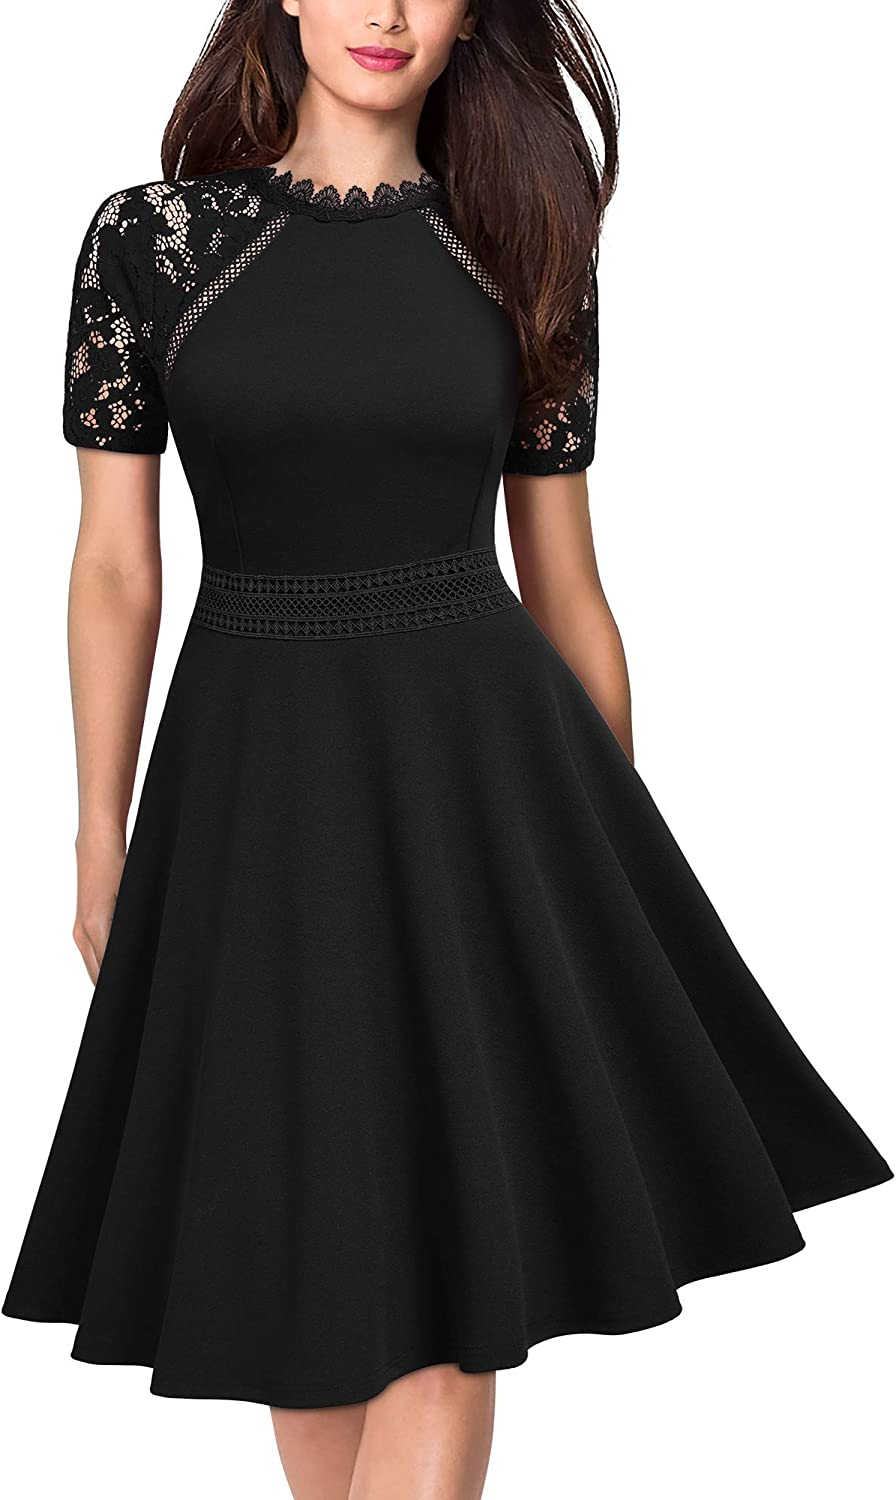 MISSMAY Women's Retro Floral Lace Short Sleeve Cocktail Party Swing A-Line Dress